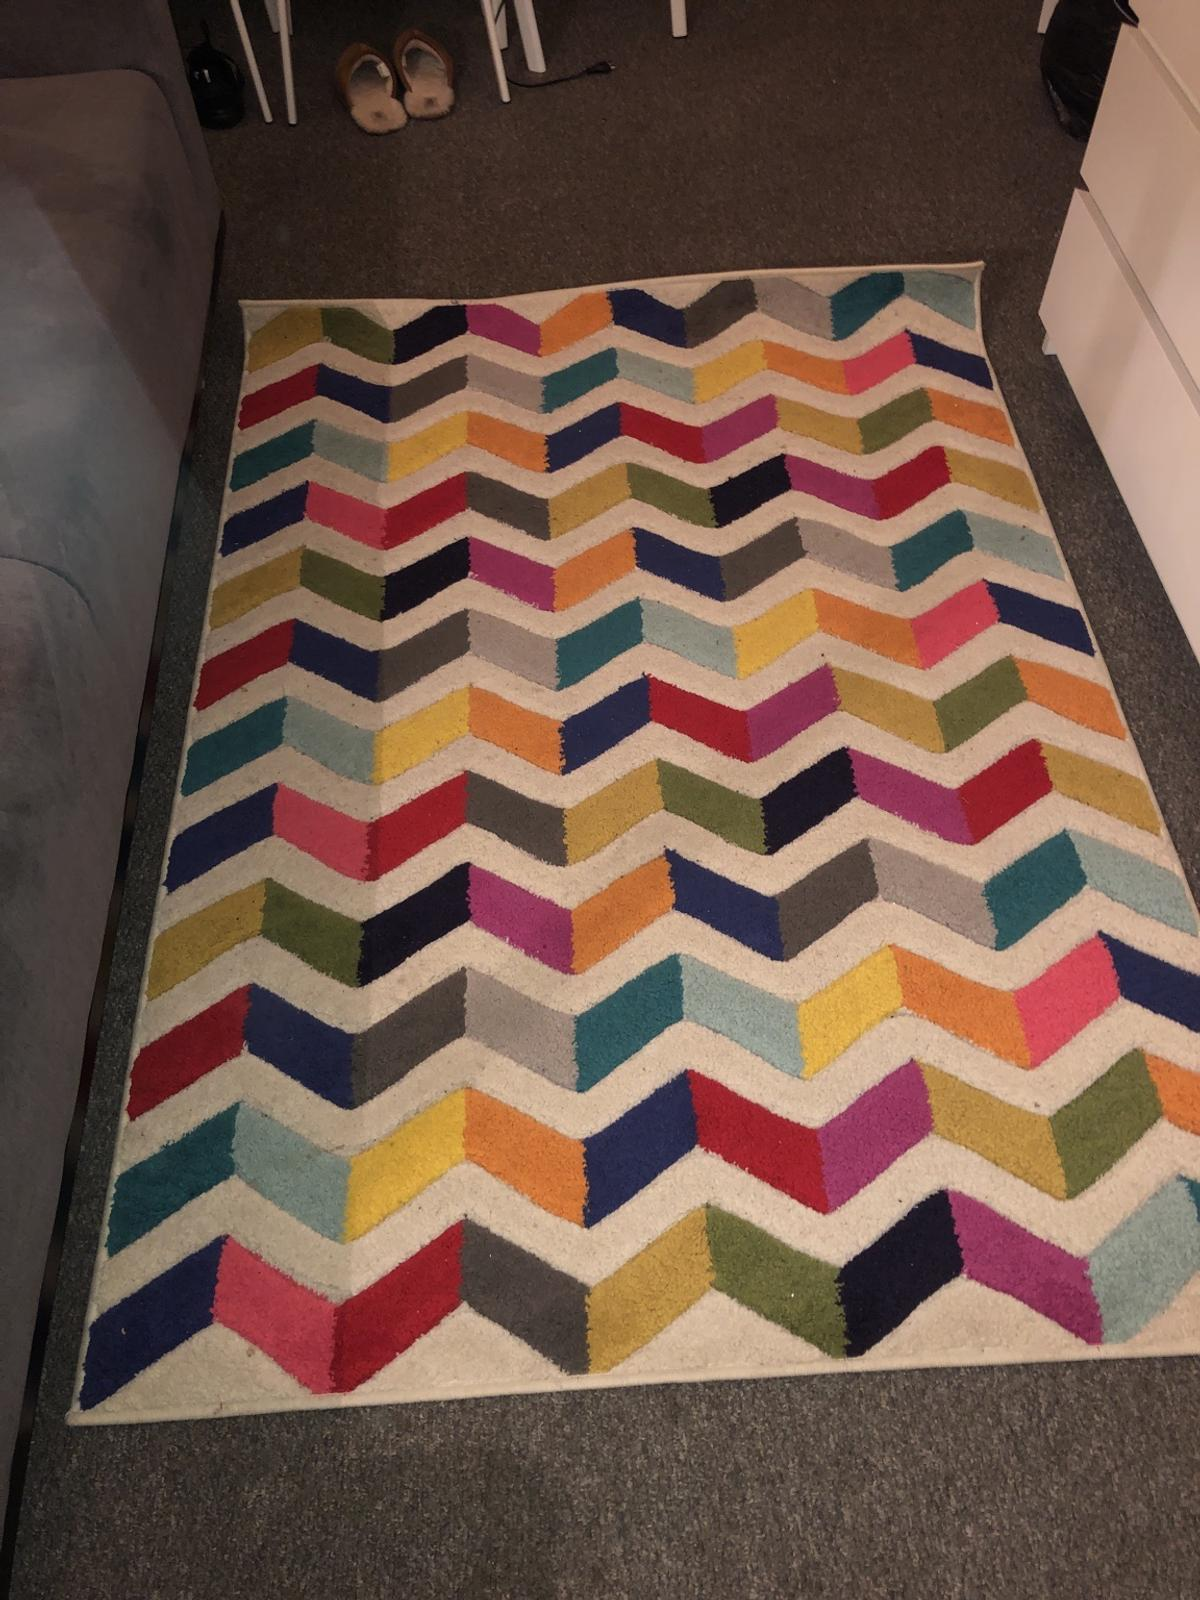 Colourful Rug In N1 London For 30 00